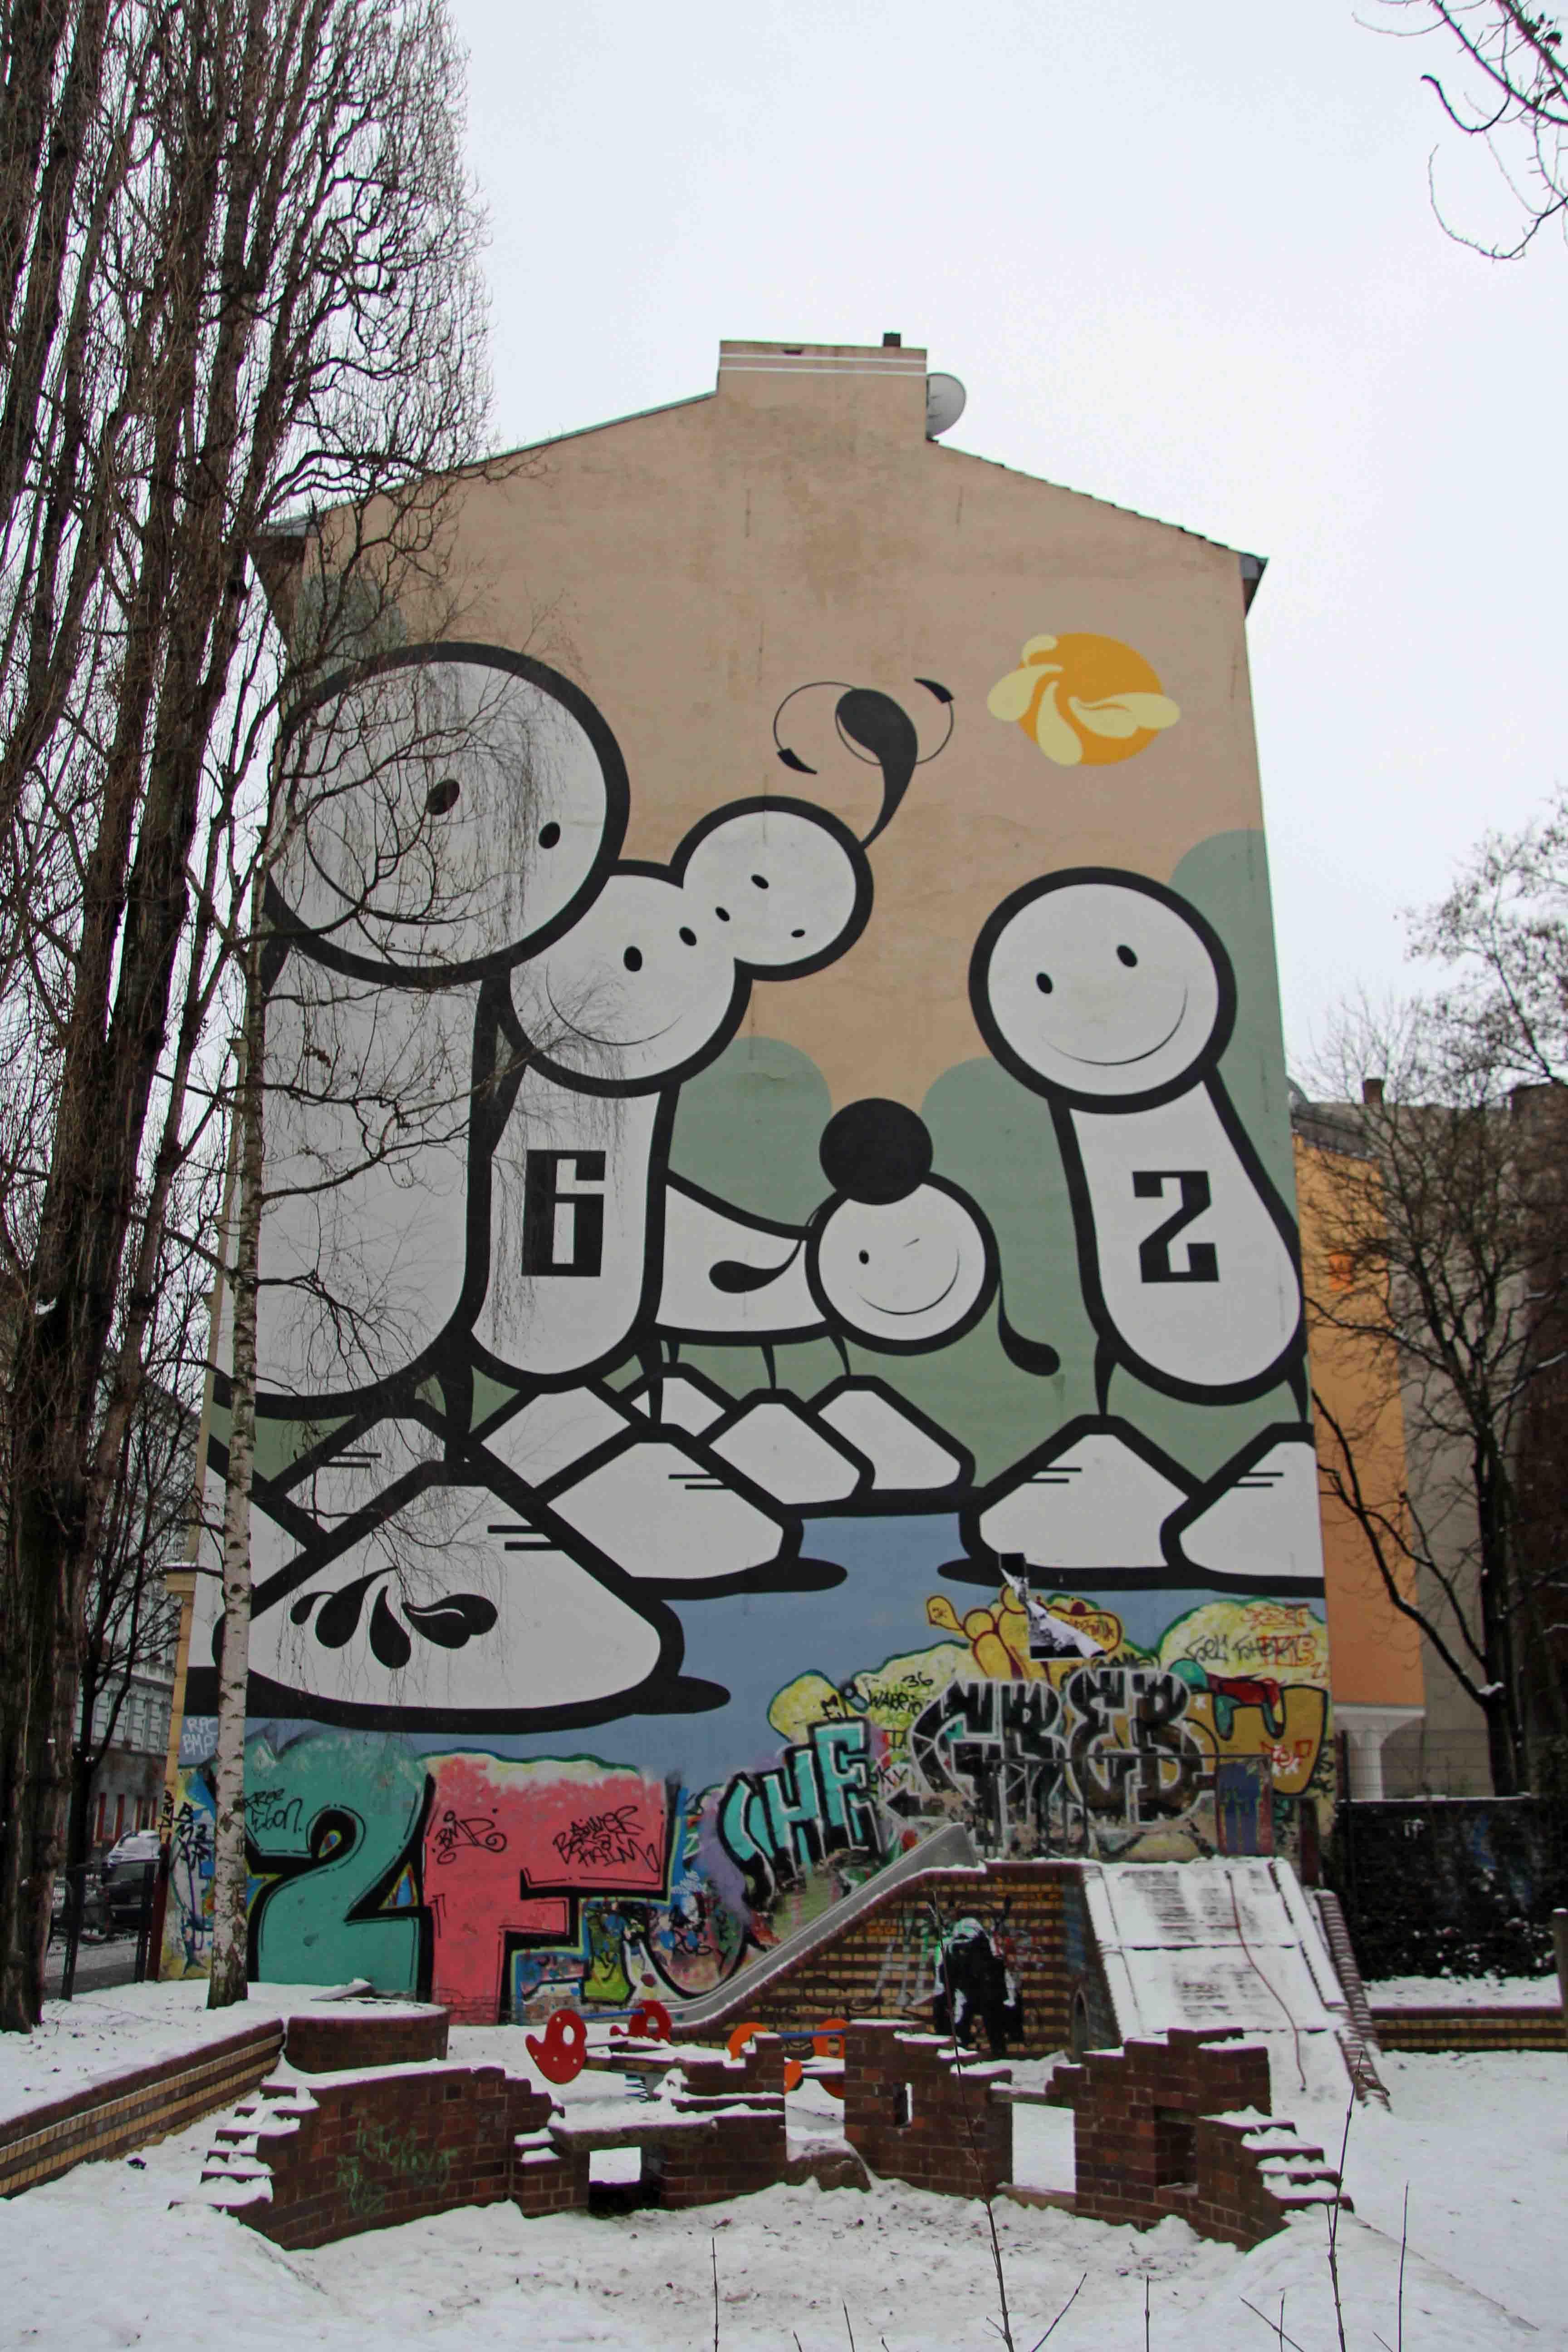 6-2 - Street Art by The London Police in Berlin